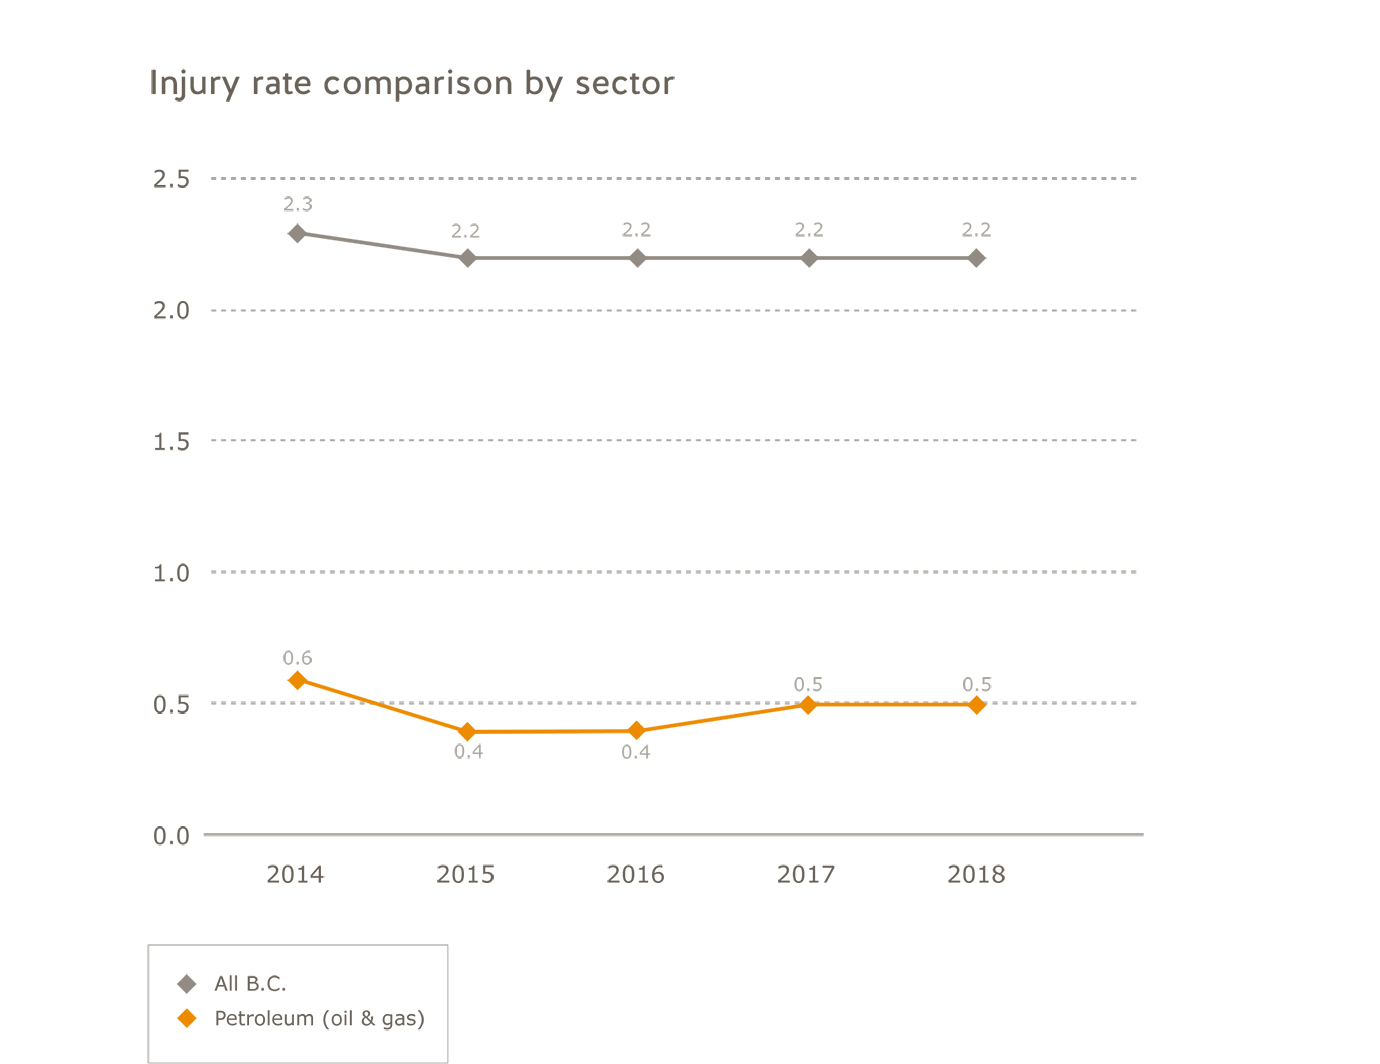 Oil and gas industry injury rate comparison by sector for 2014 to 2018. All B.C.: 2014=2.3; 2015=2.2; 2016=2.2; 2017=2.2; 2018=2.2. Petroleum: 2014=0.6; 2015=0.4; 2016=0.4; 2017=0.5; 2018=0.5